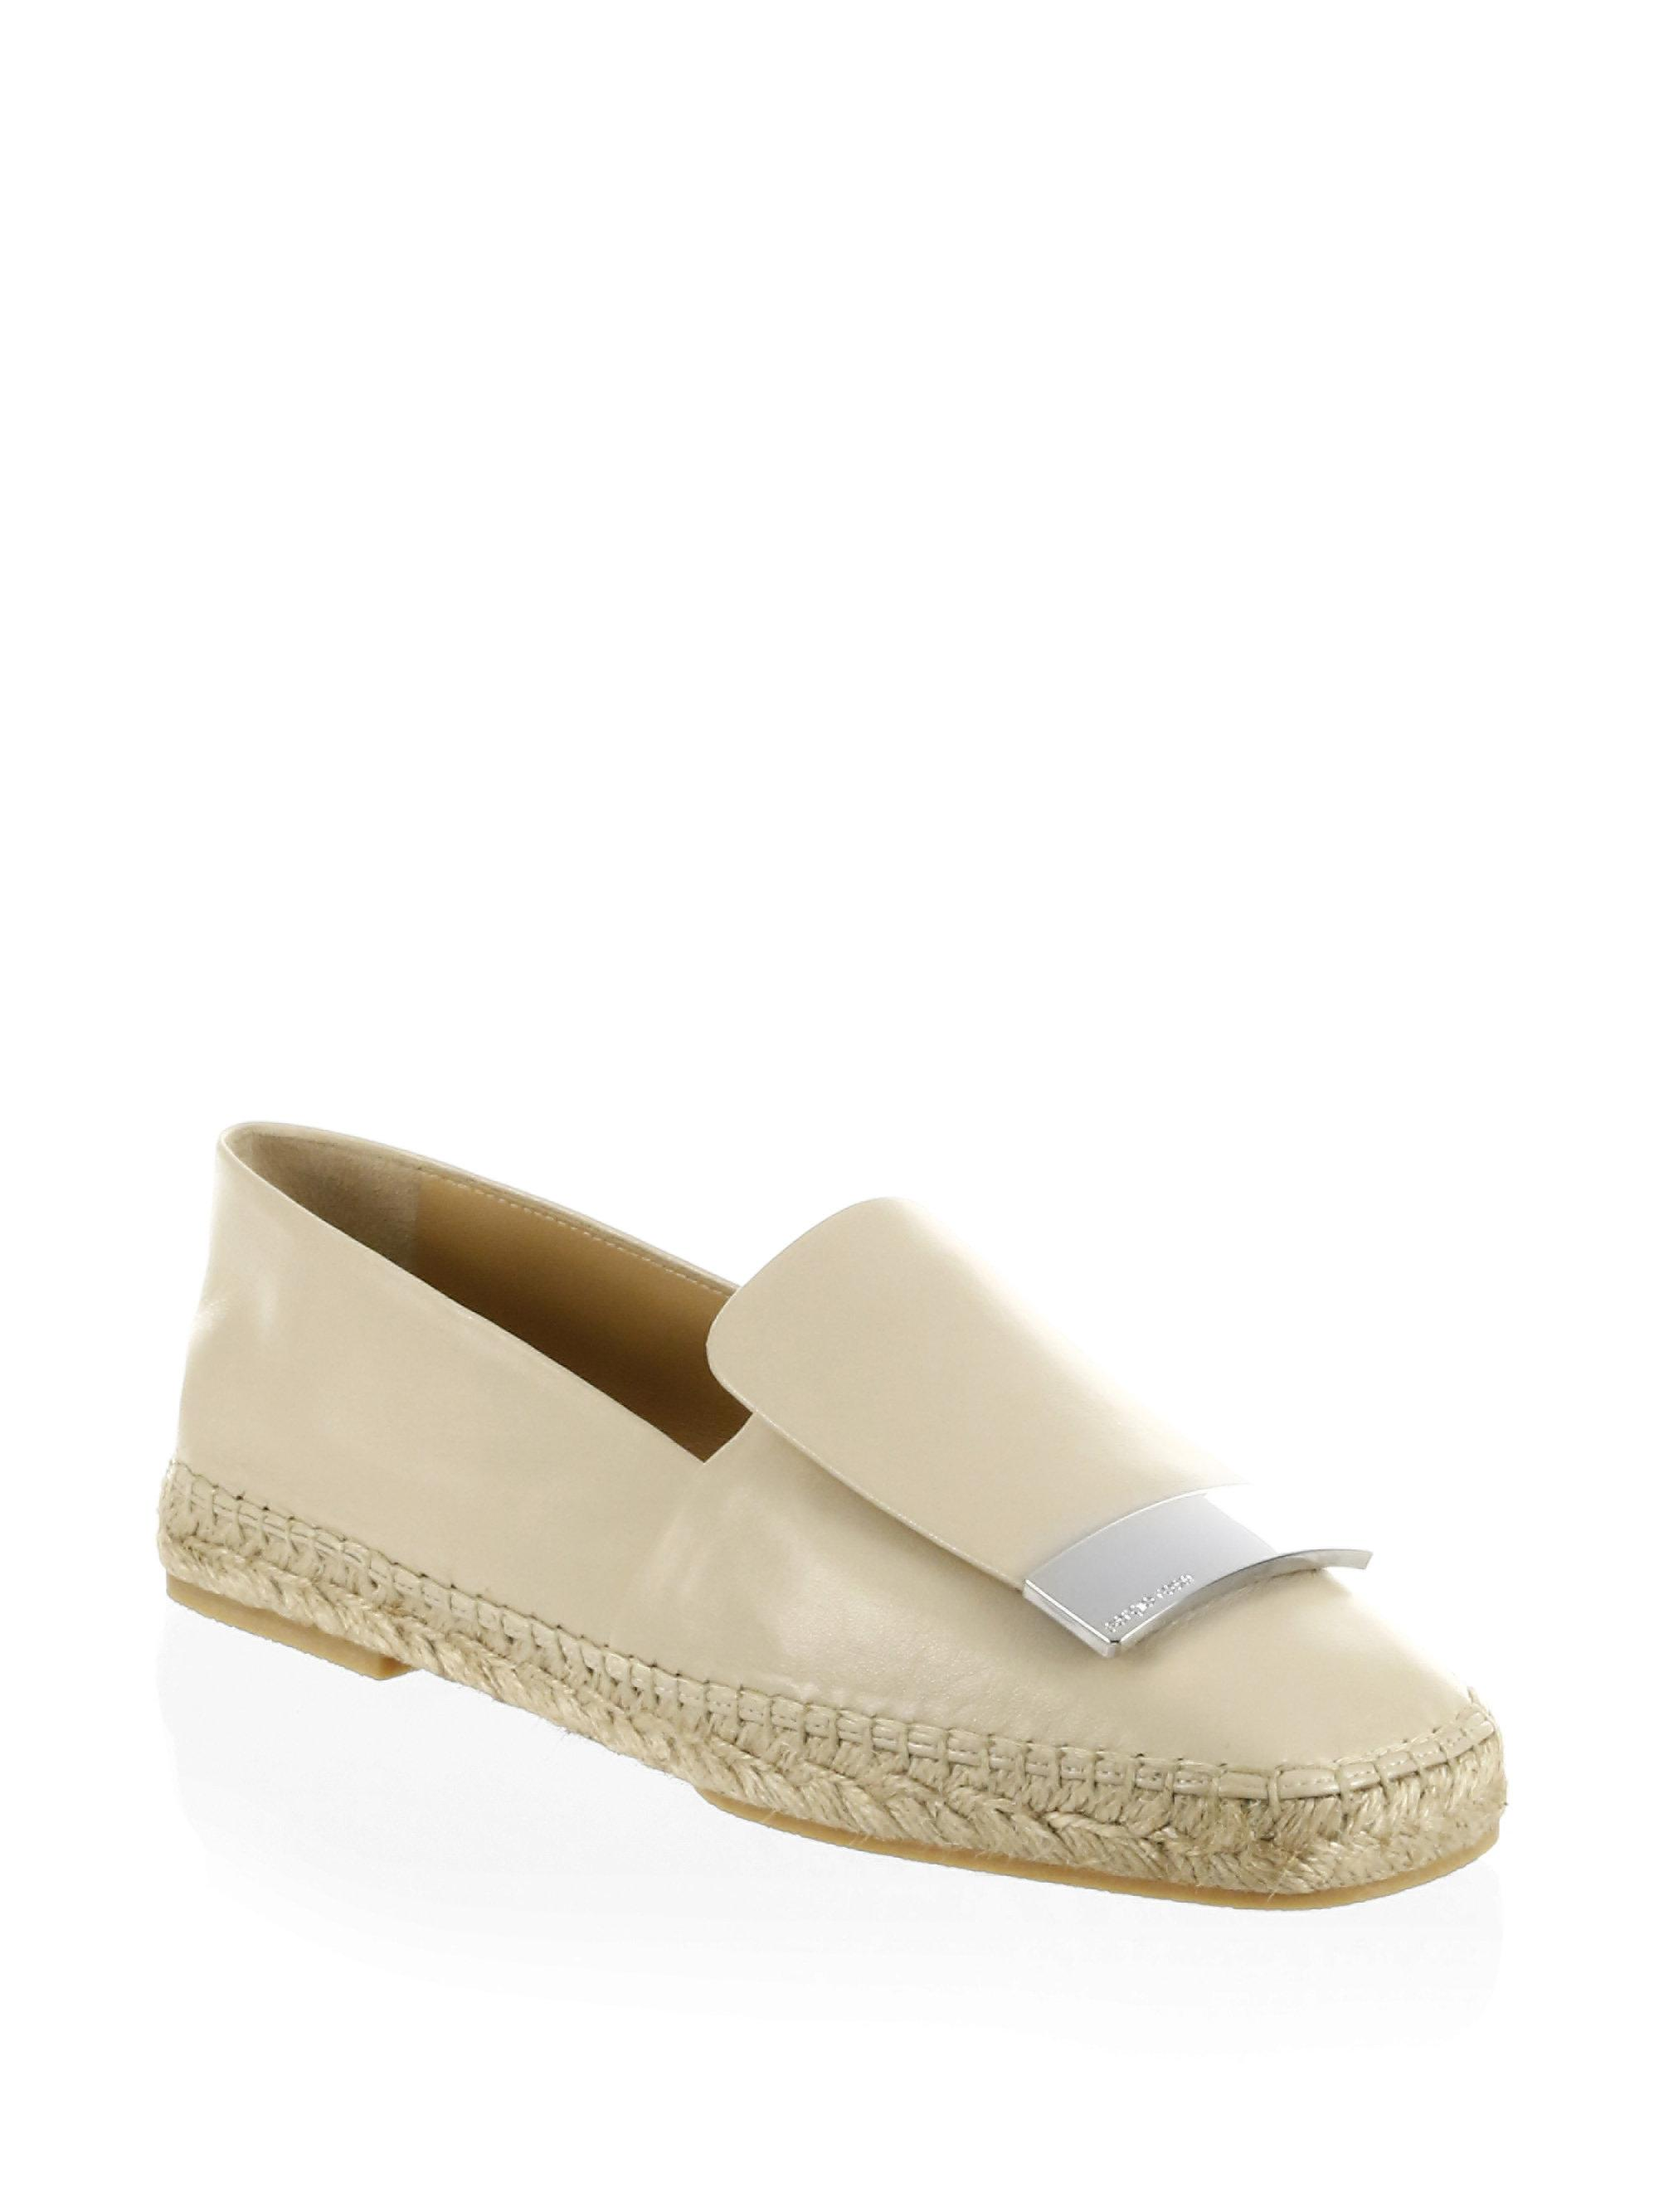 Cheap Price Store Sergio Rossi Leather Espadrilles Sale Sale Online Get Authentic Online qMYO5hk